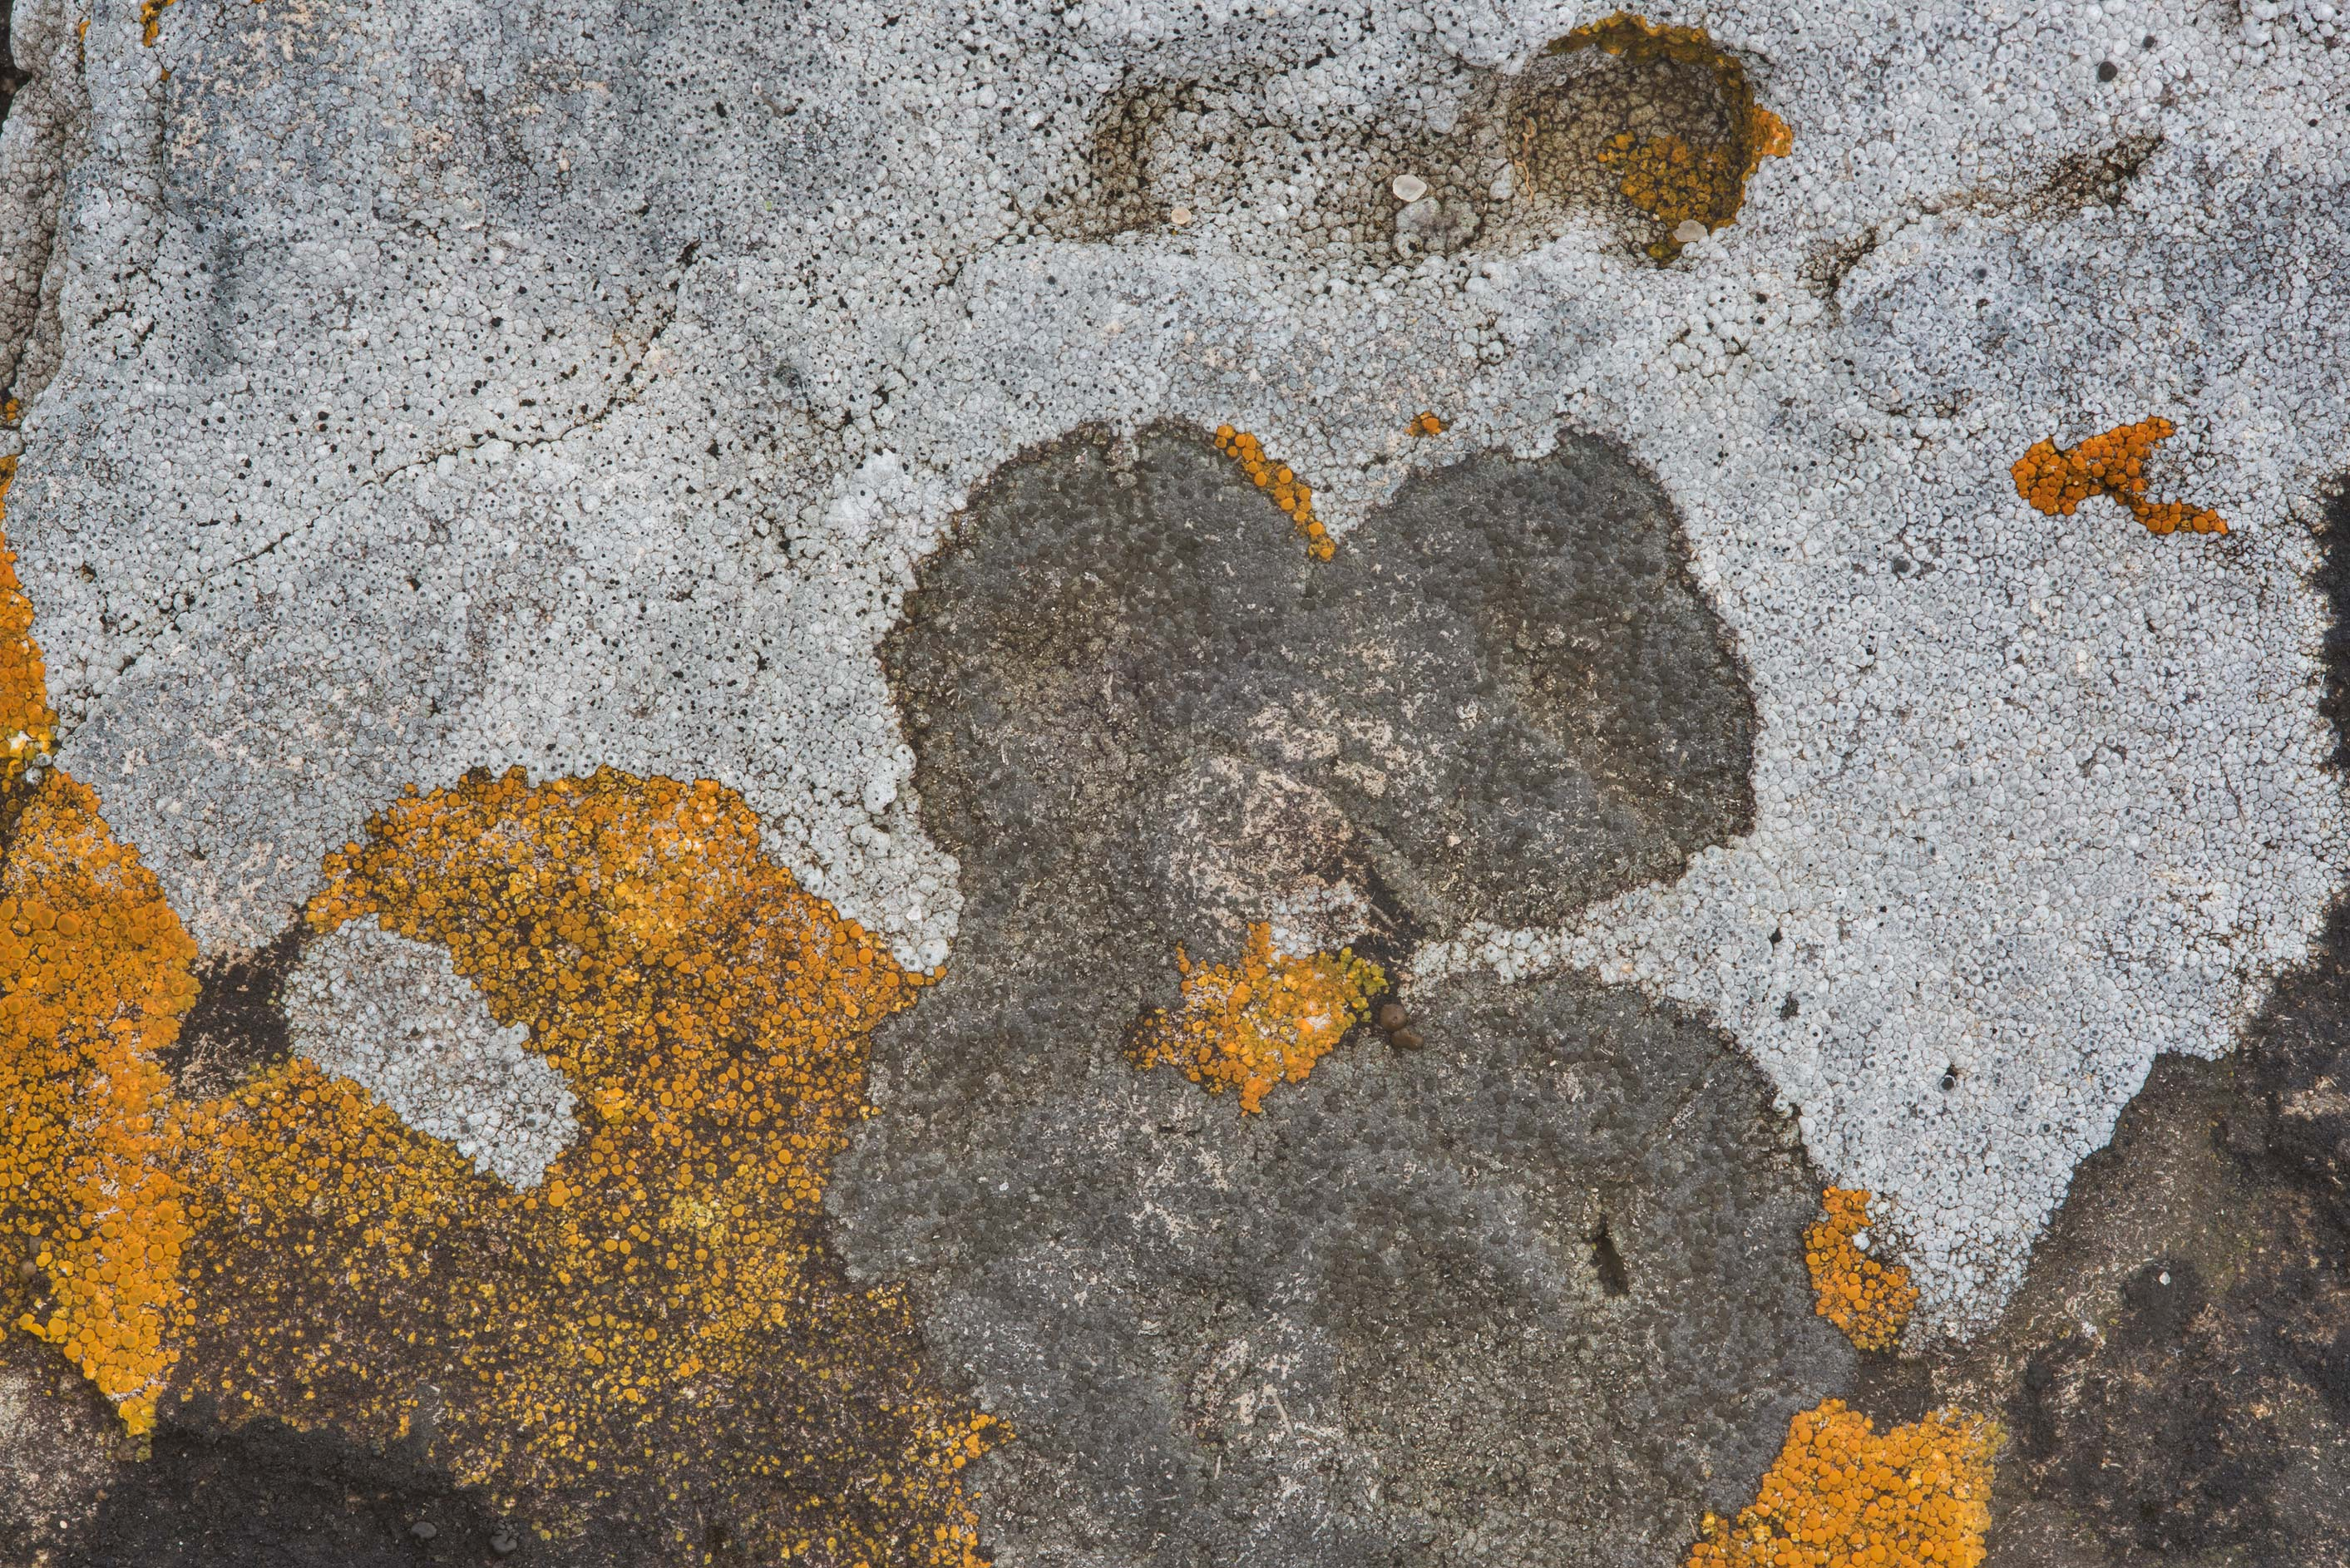 Crustose lichens of different colors on limestone...Falls State Park. Johnson City, Texas